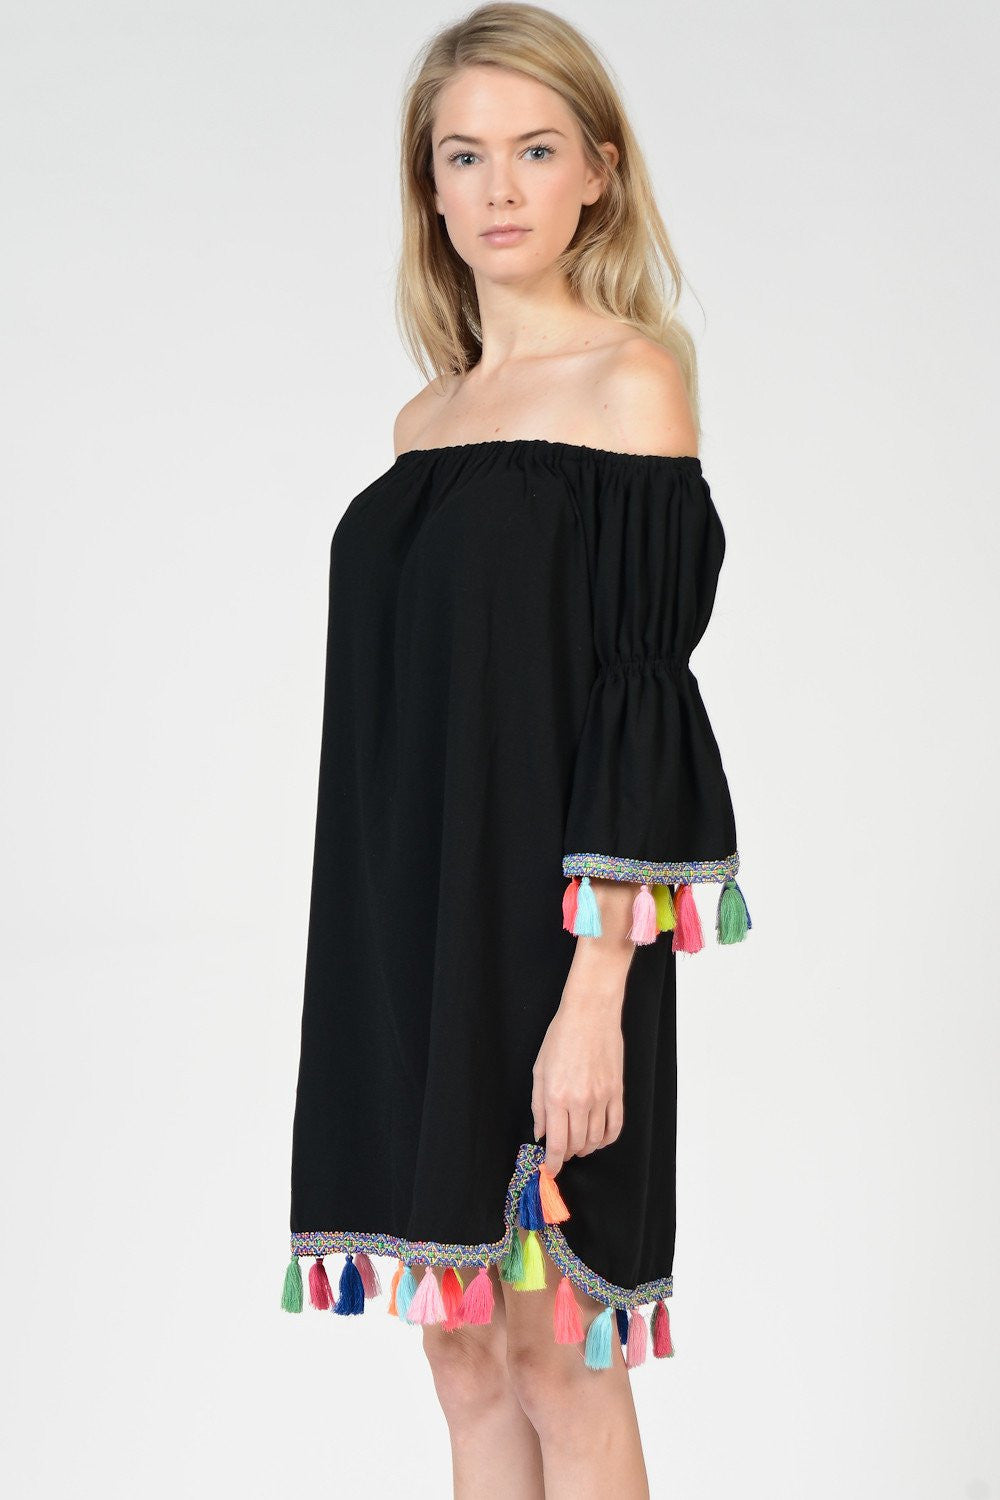 Off Shoulder Color Tassels Black Dress